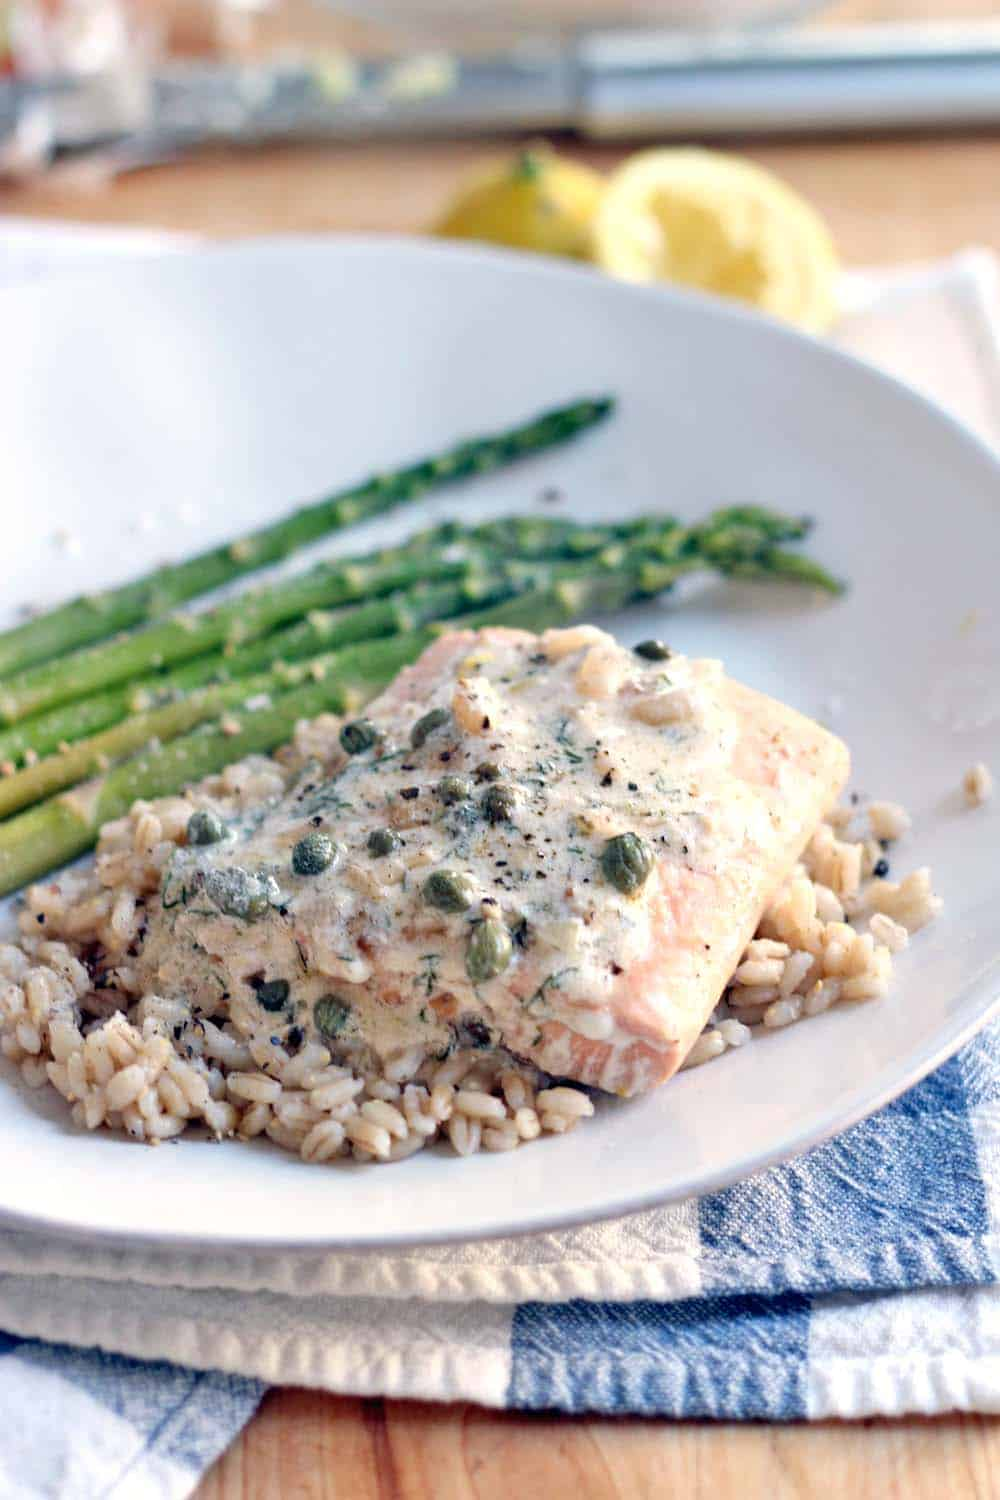 White plate holding Garlic Poached Salmon with Creamy Lemon Caper Sauce over rice, with asparagus on the side.